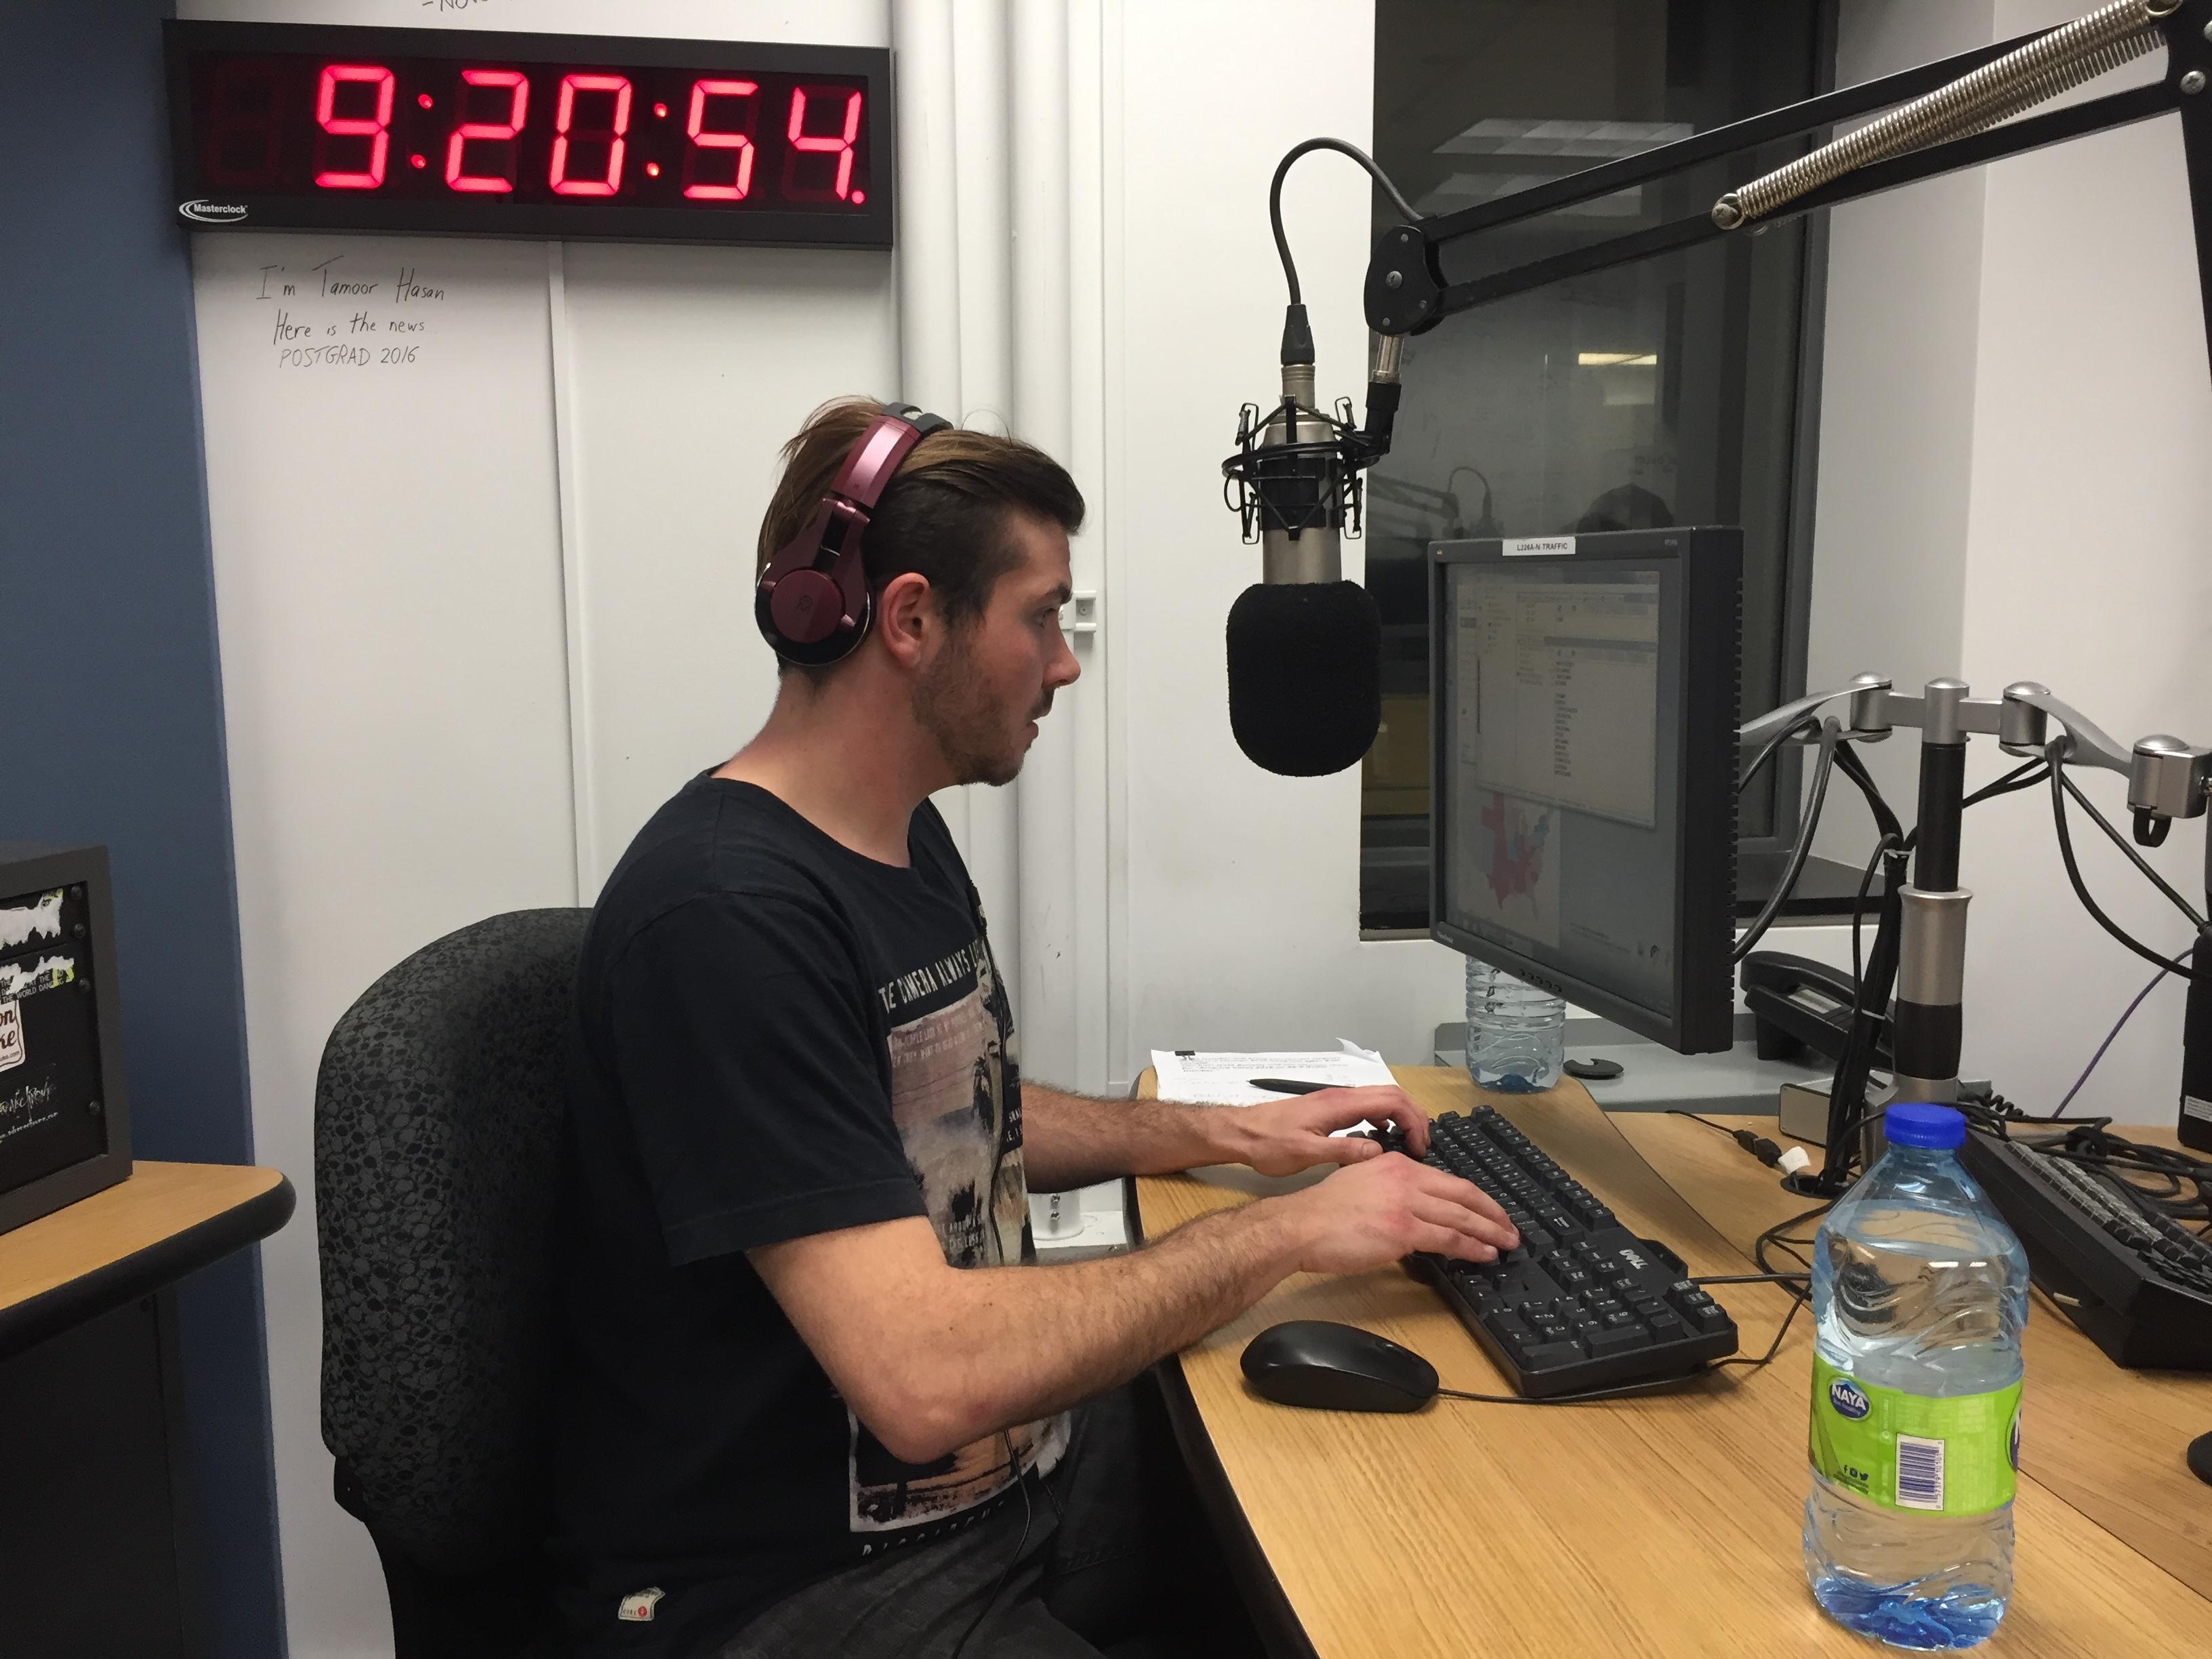 Reagan_McSwain provides live results for Radio Humber